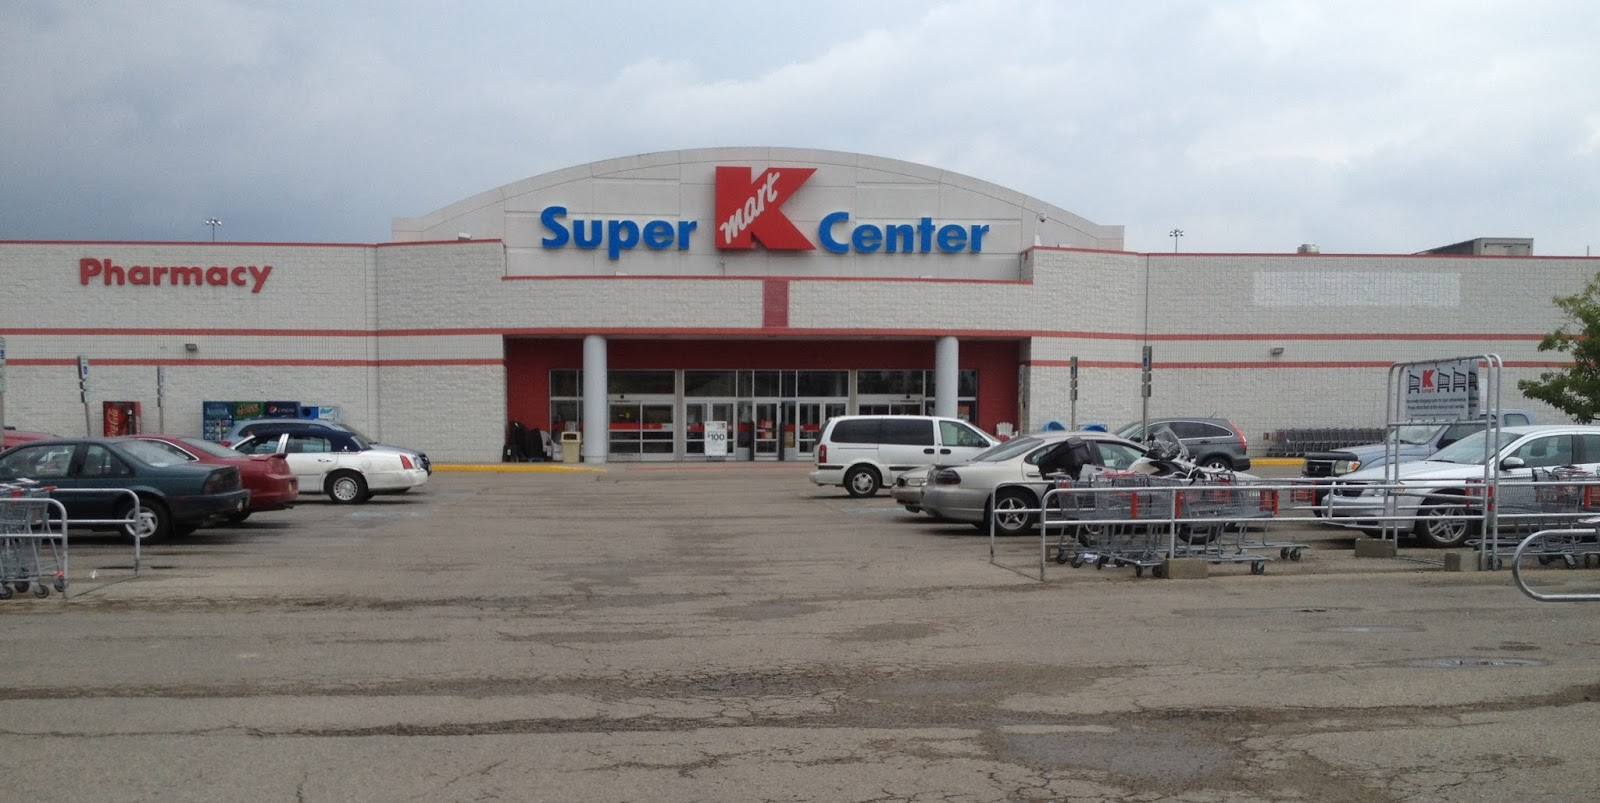 Kmart Black Friday Deals Kmart offered a wide variety of incredible deals during its Black Friday and Thanksgiving sales in Much like other retailers, electronics were featured prominently/5().